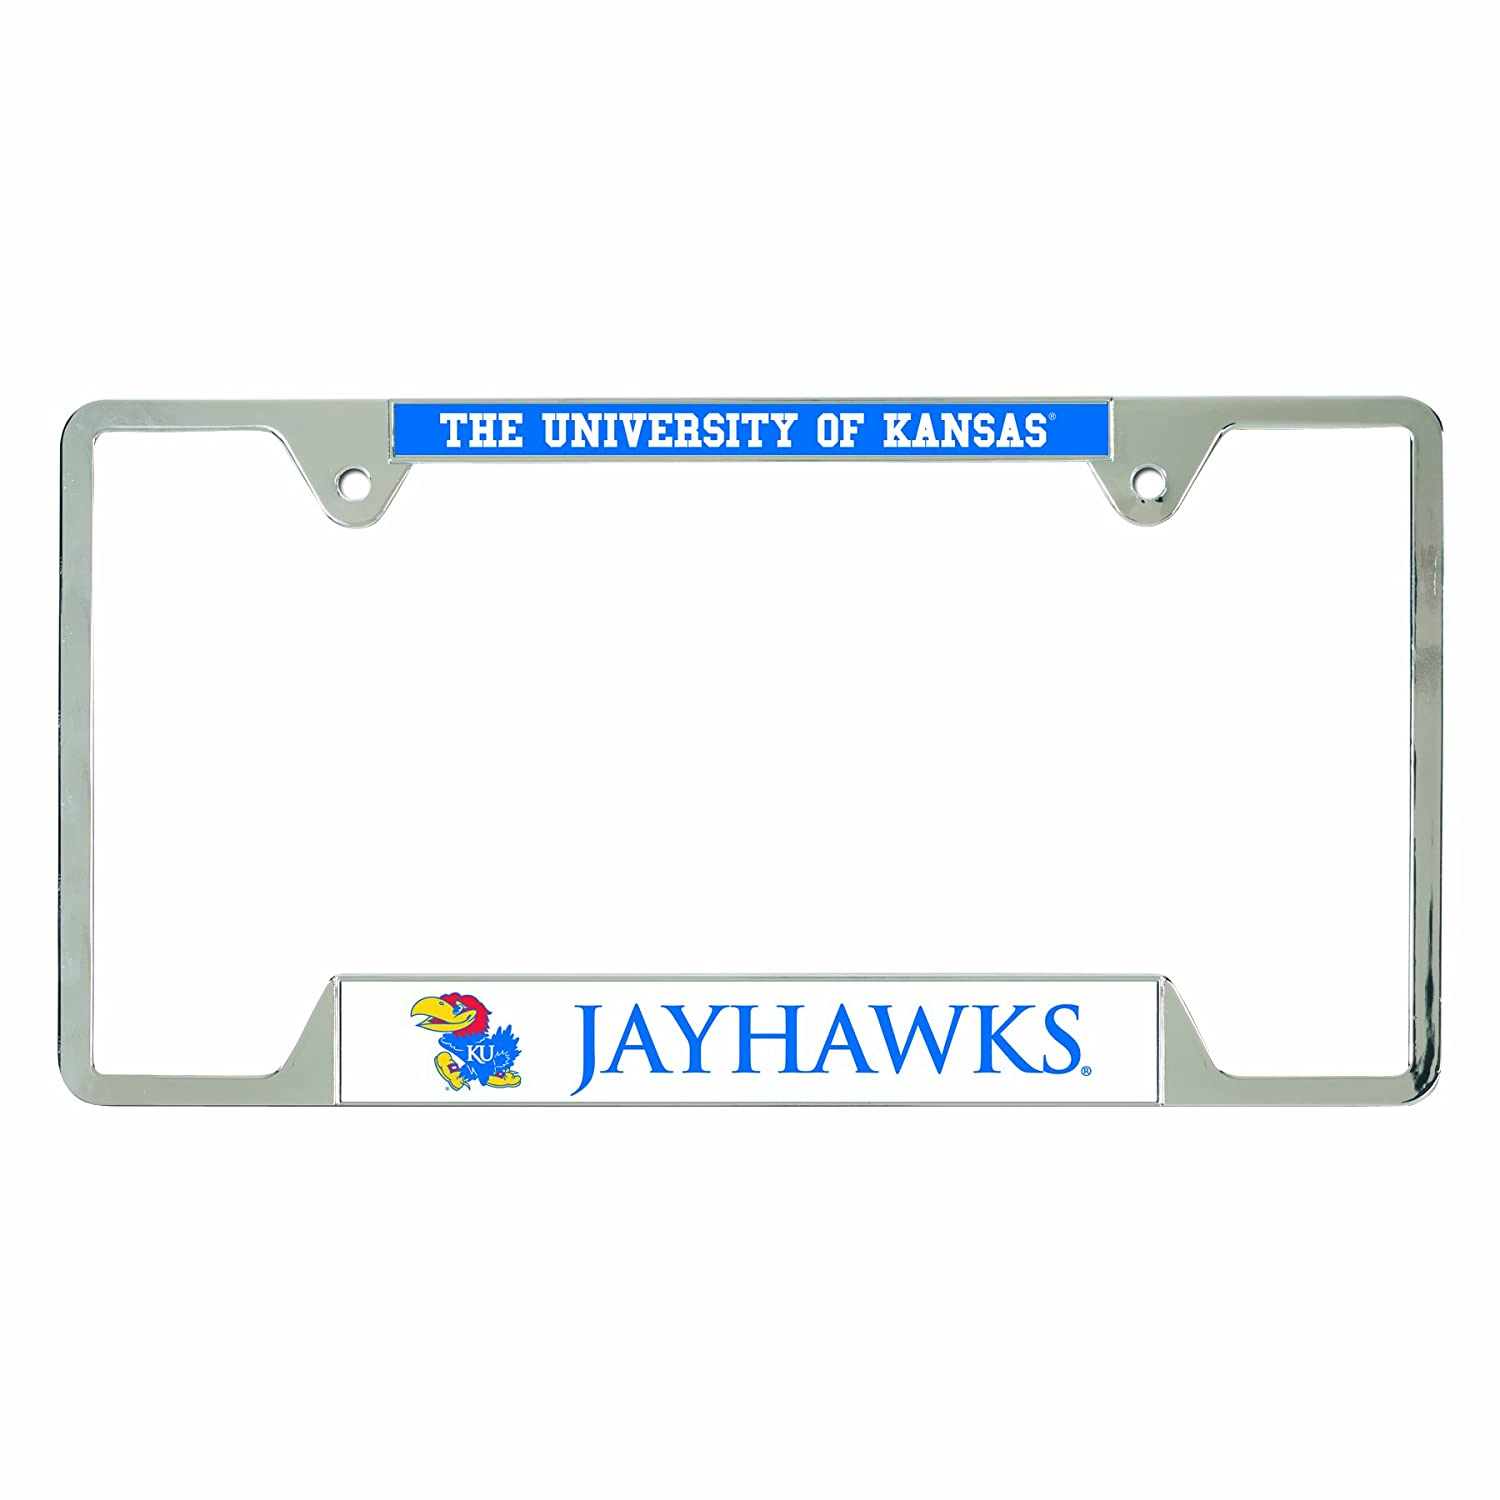 WinCraft NCAA License Plate Frames